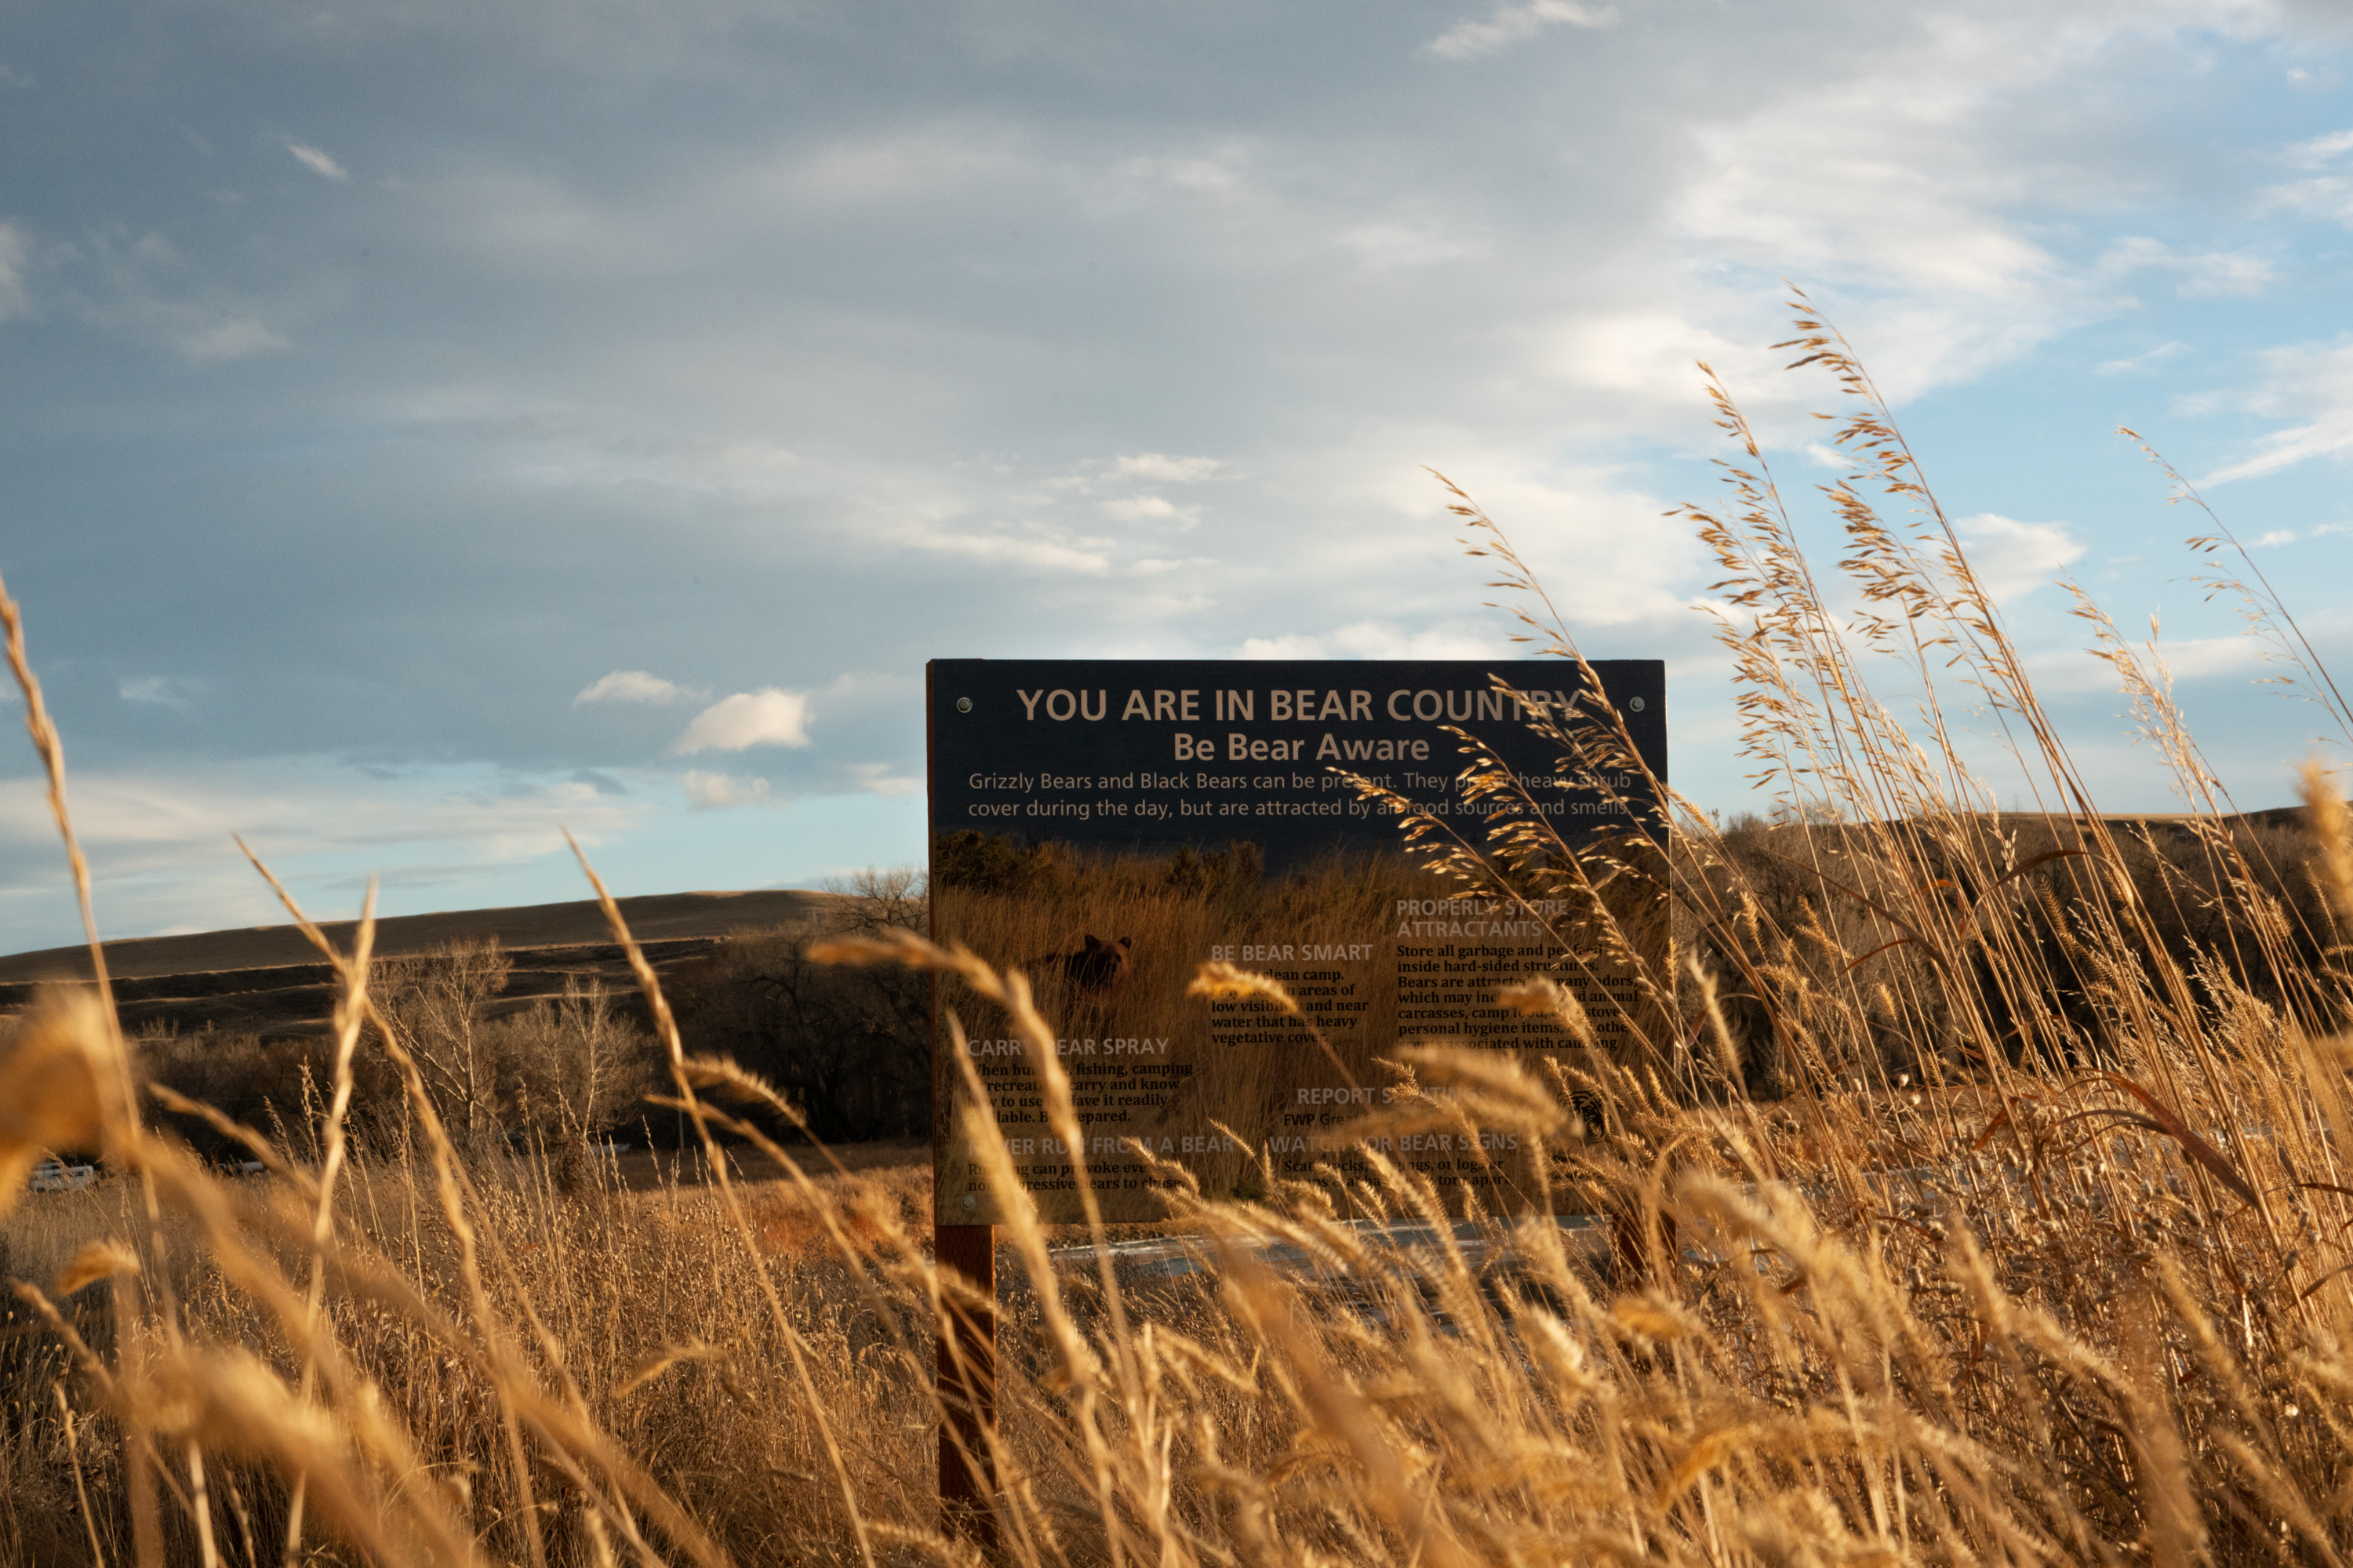 """A sign that reads """"You are in bear country, be bear aware"""" stands amongst tall grasses next to the Marias River in northwest Montana."""